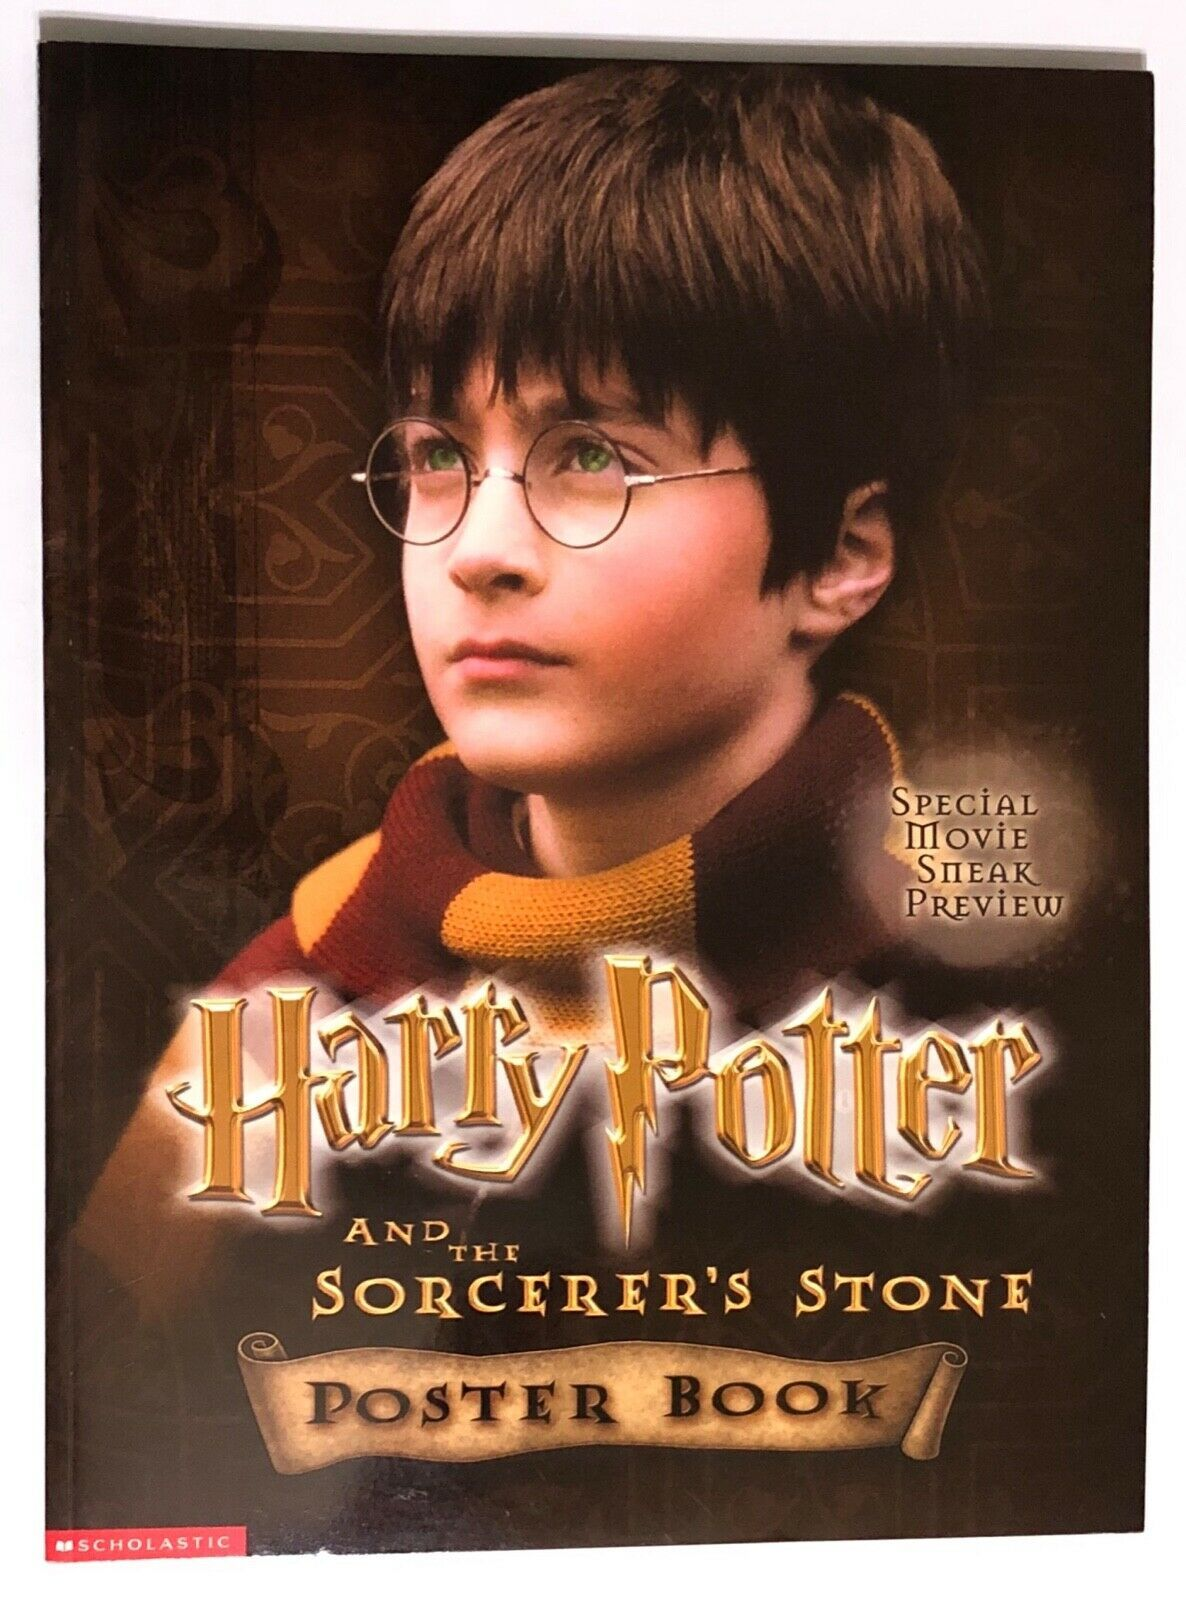 Primary image for Harry Potter and the Sorcerer's Stone Movie Poster Book 2001 Scholastic